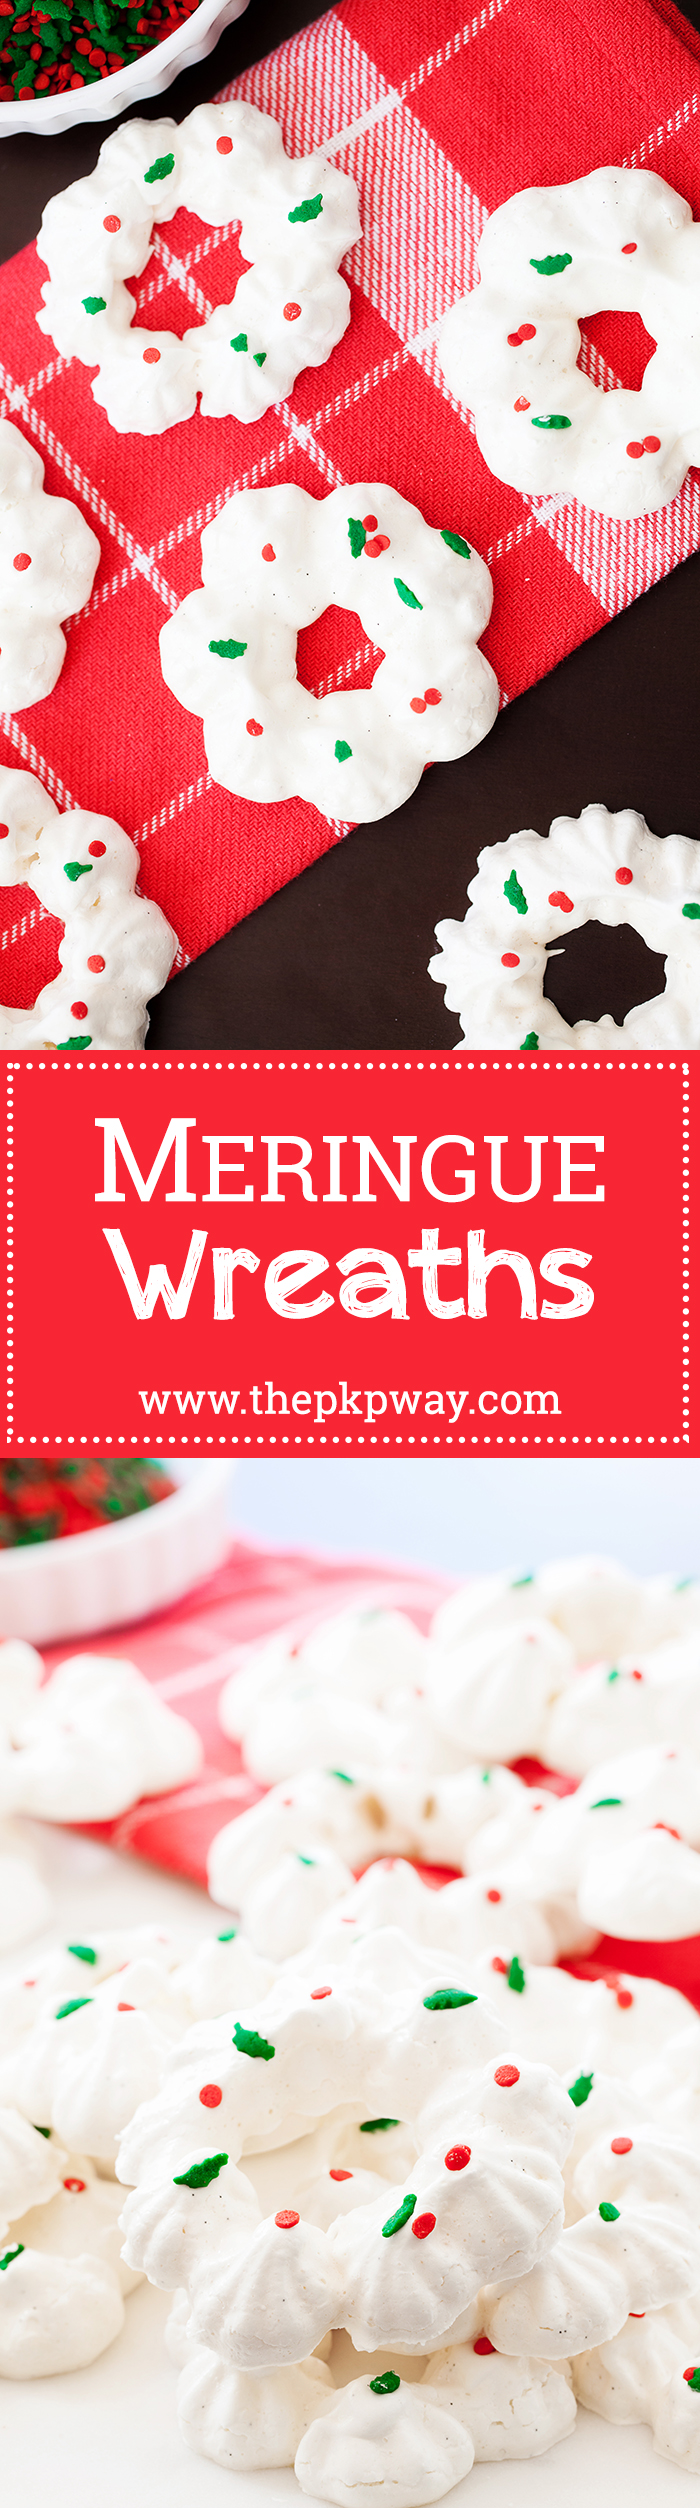 Bring these meringue wreaths to your next holiday party and add some cheer to the holiday table.